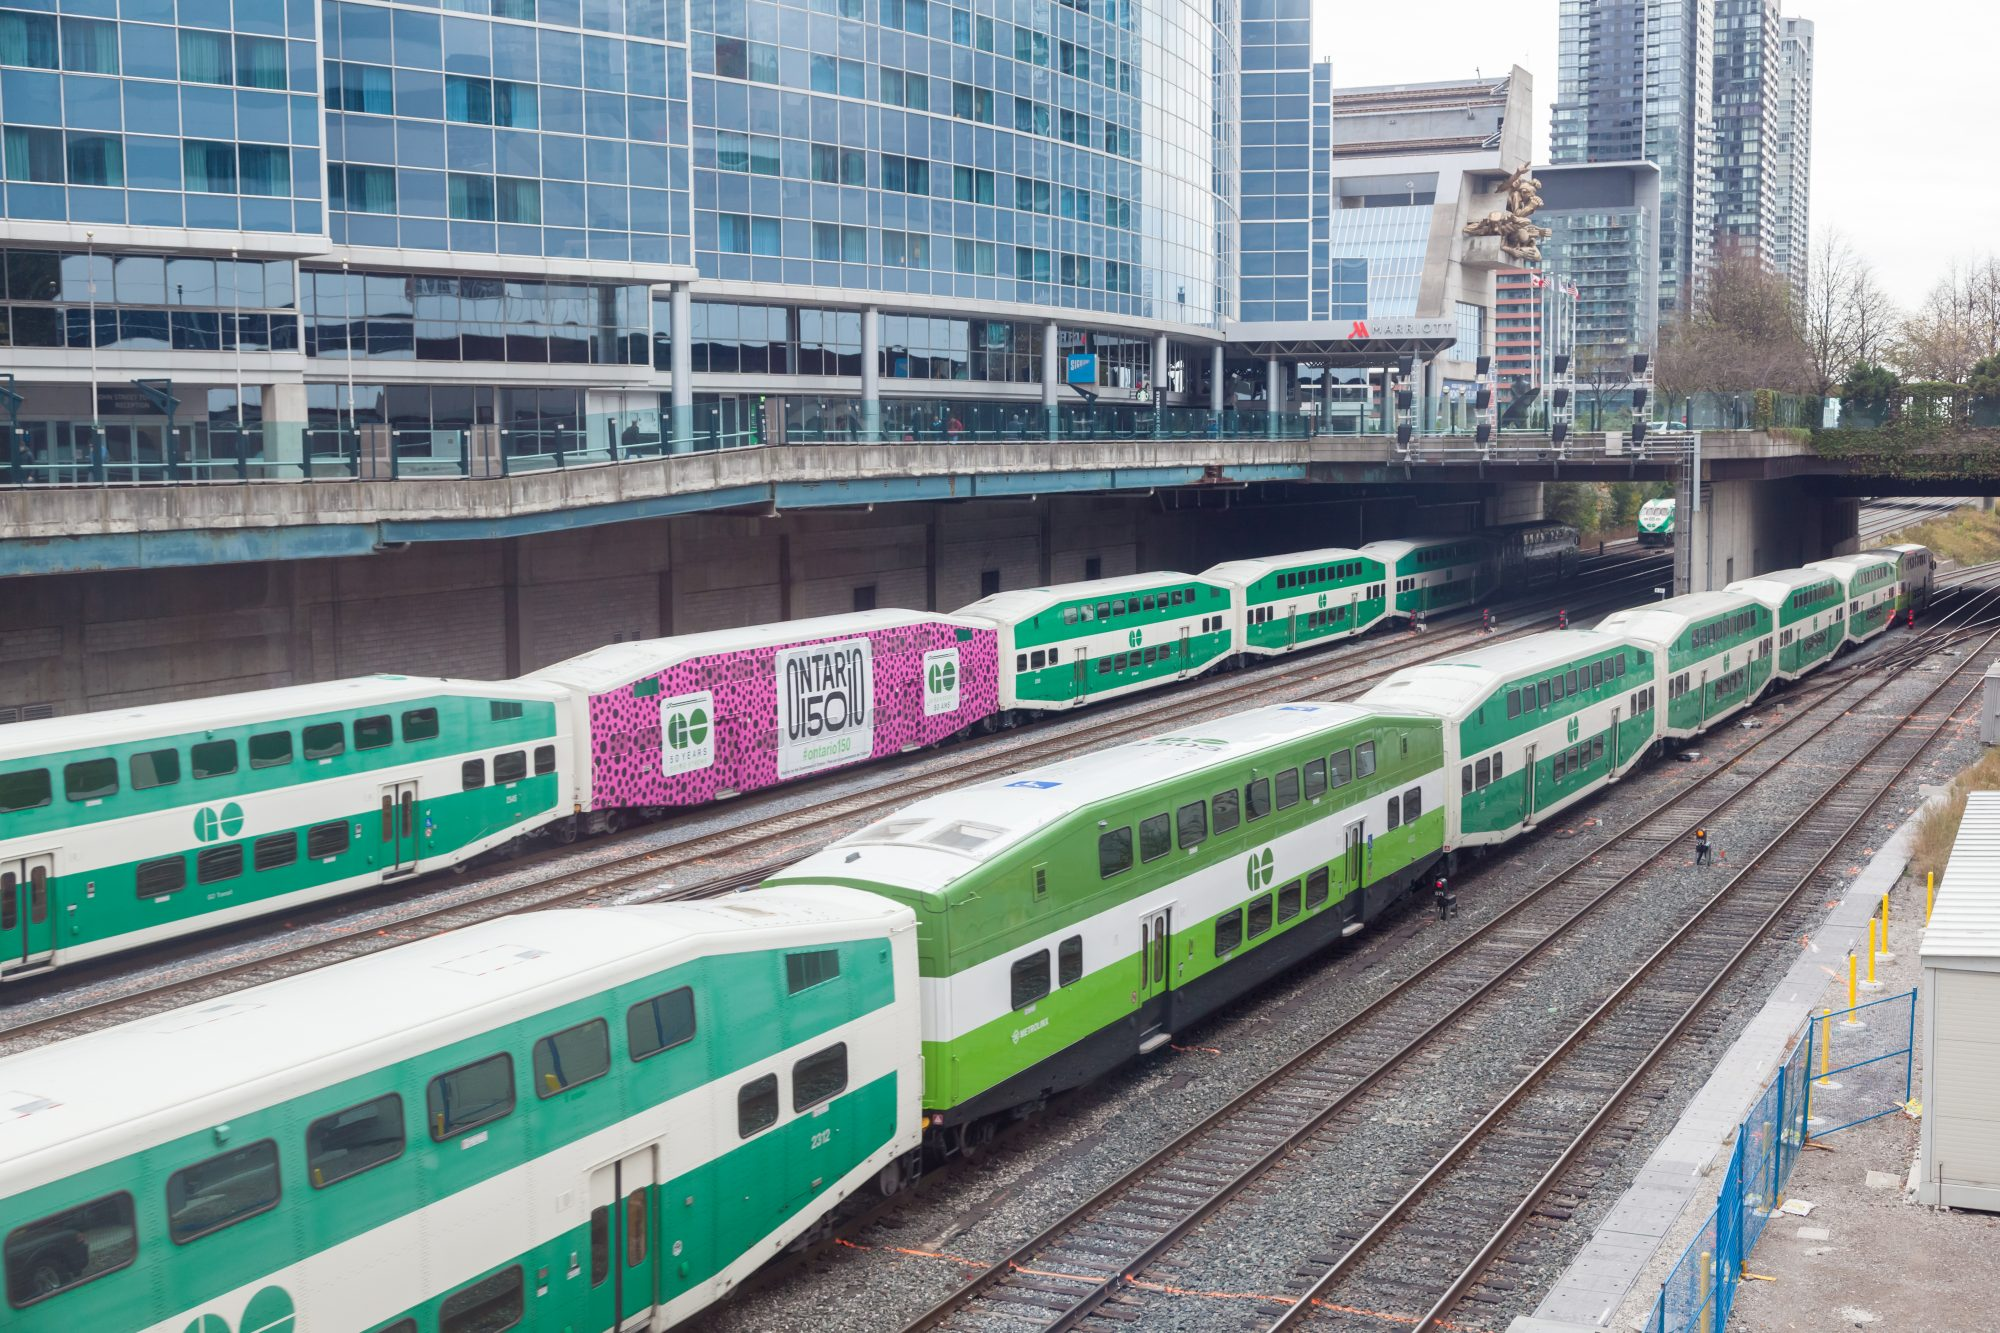 Go Transit trains. Photo: Philip Lange / Shutterstock.com.